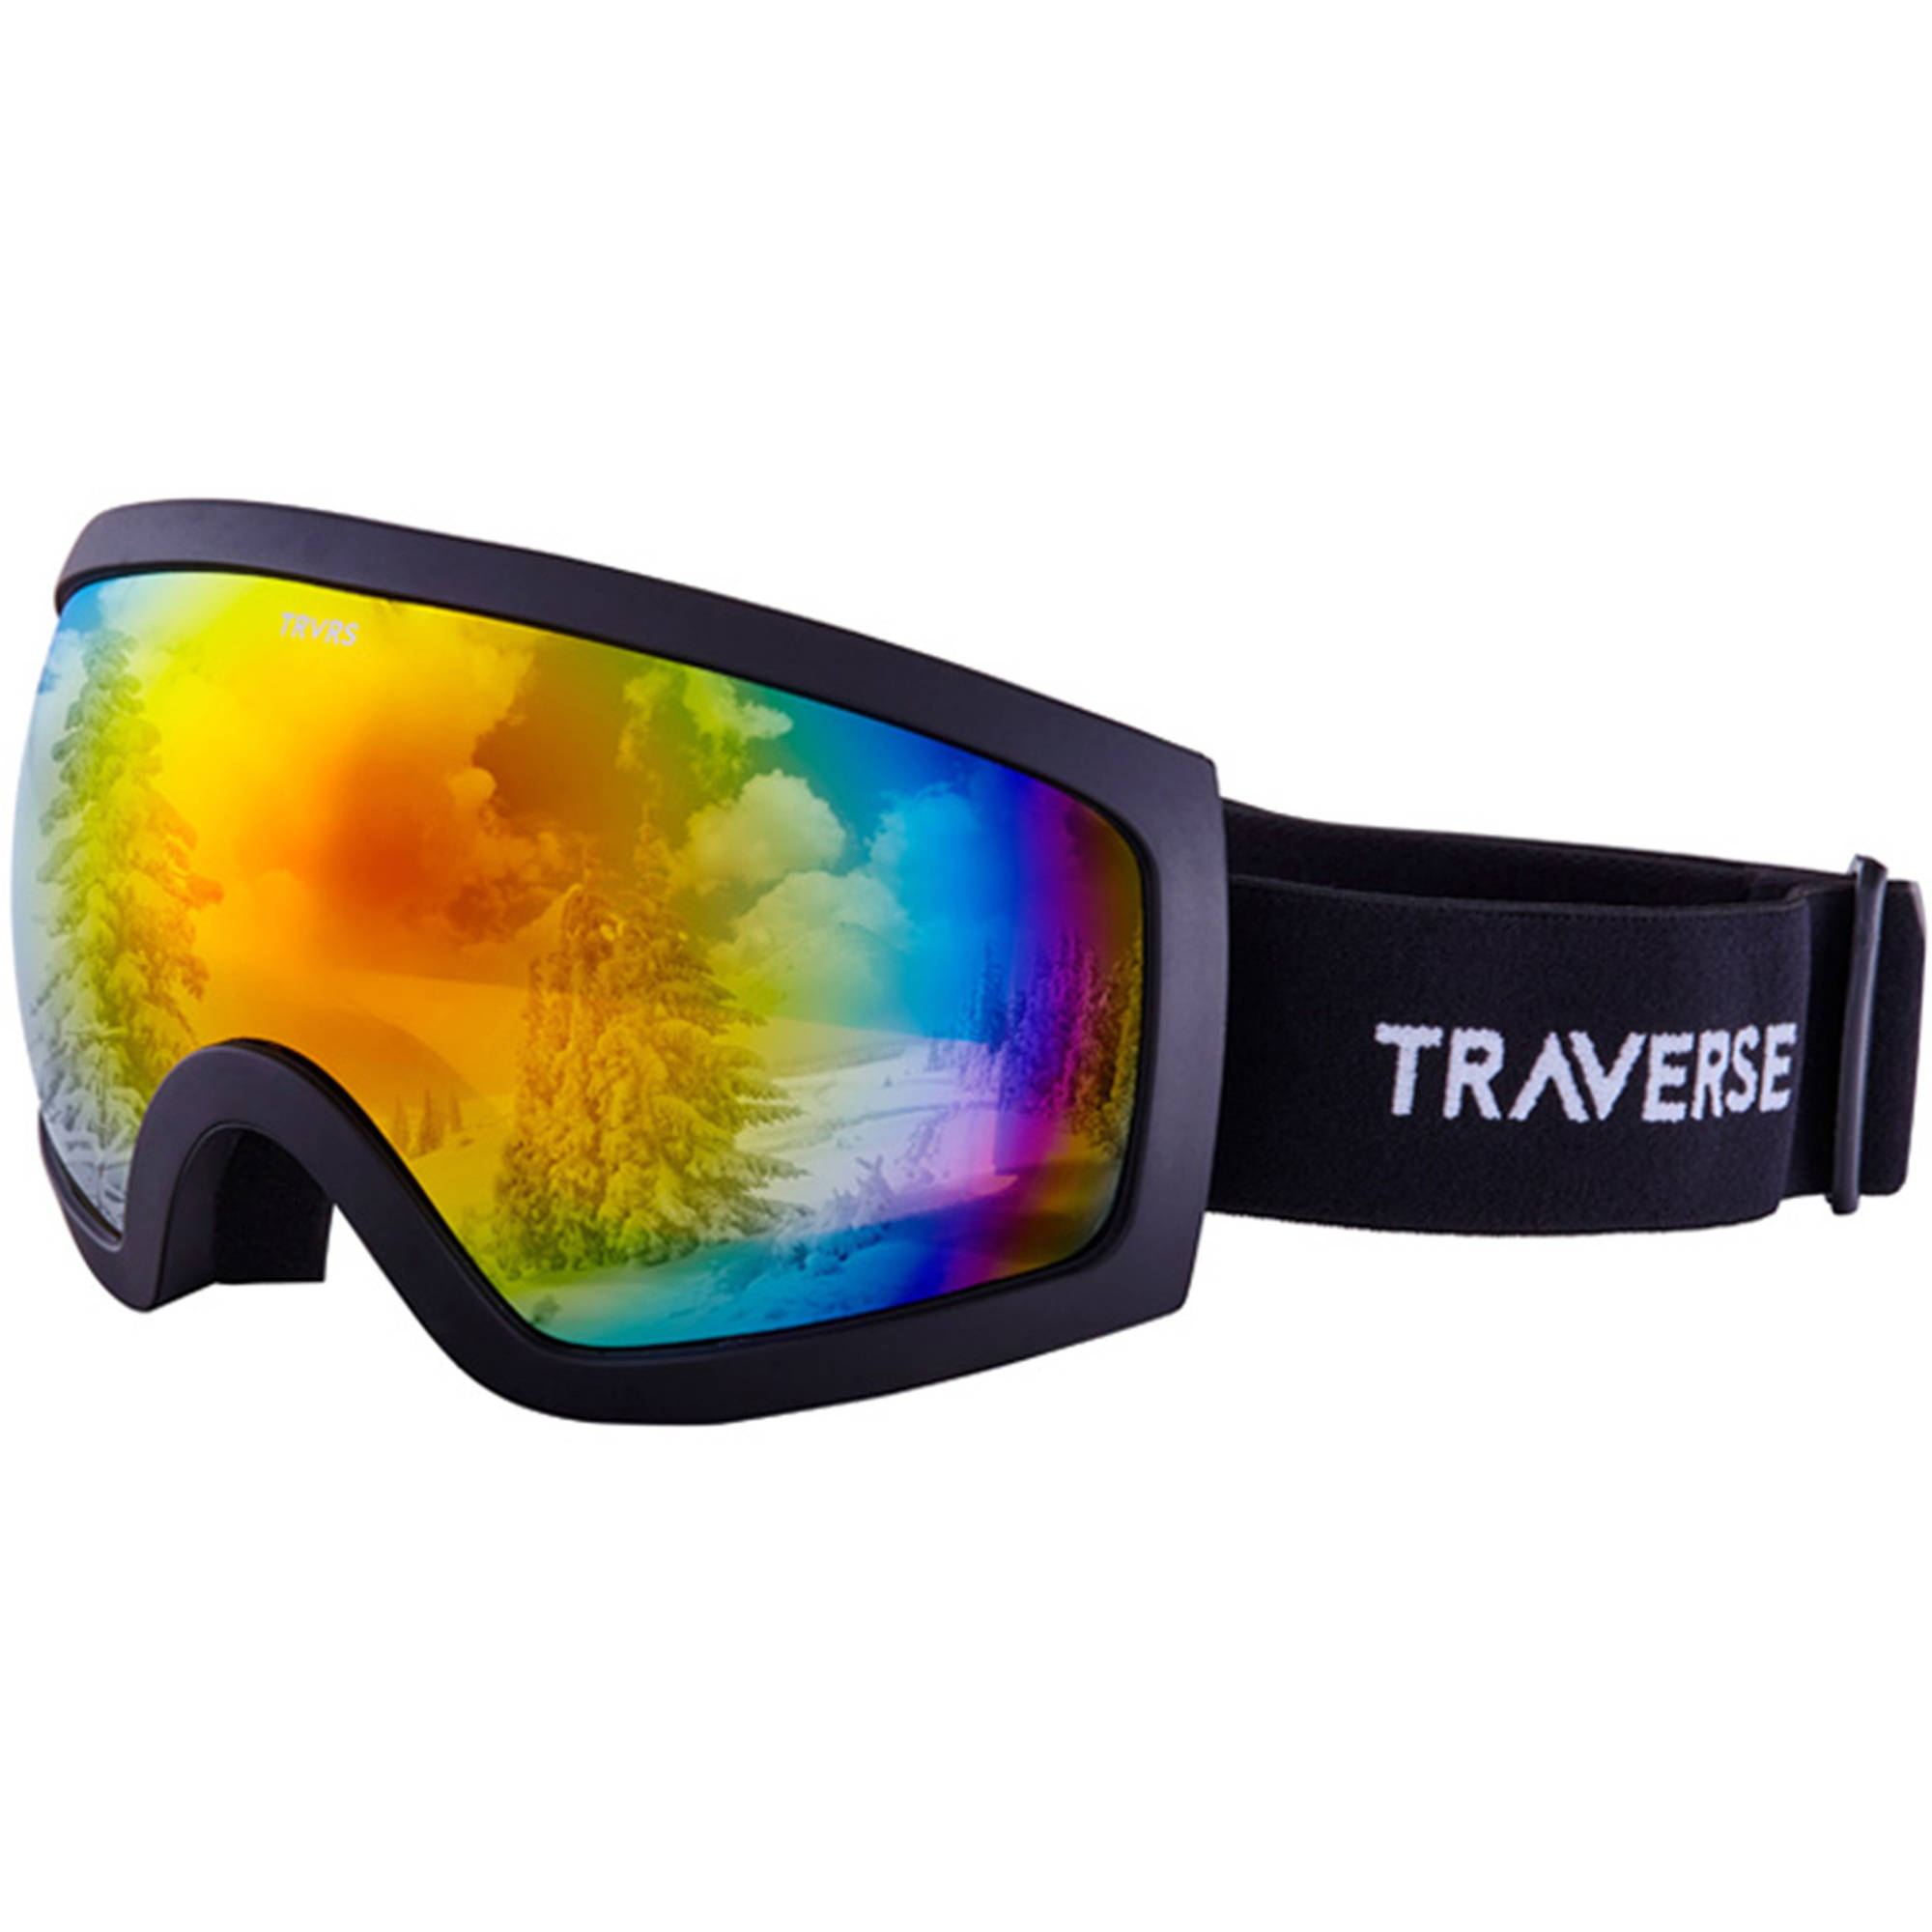 Traverse Varia Ski, Snowboard, and Snowmobile Goggles, Obsidian with Phoenix Lens